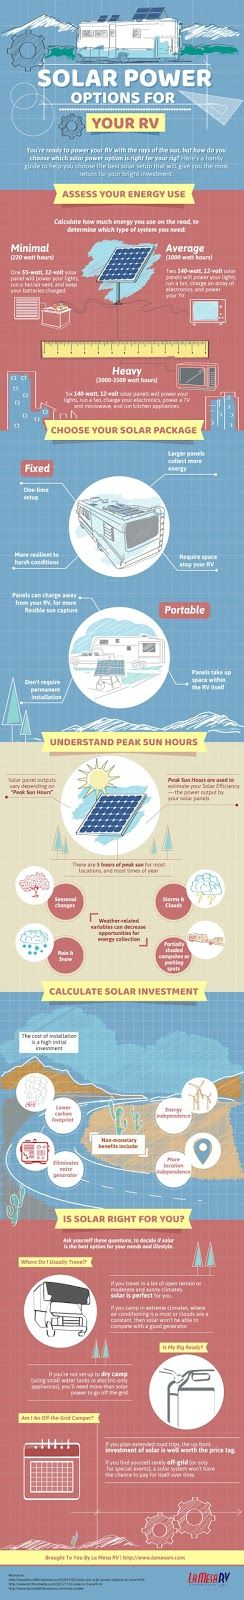 Check out this great infographic on solutions for using solar power.